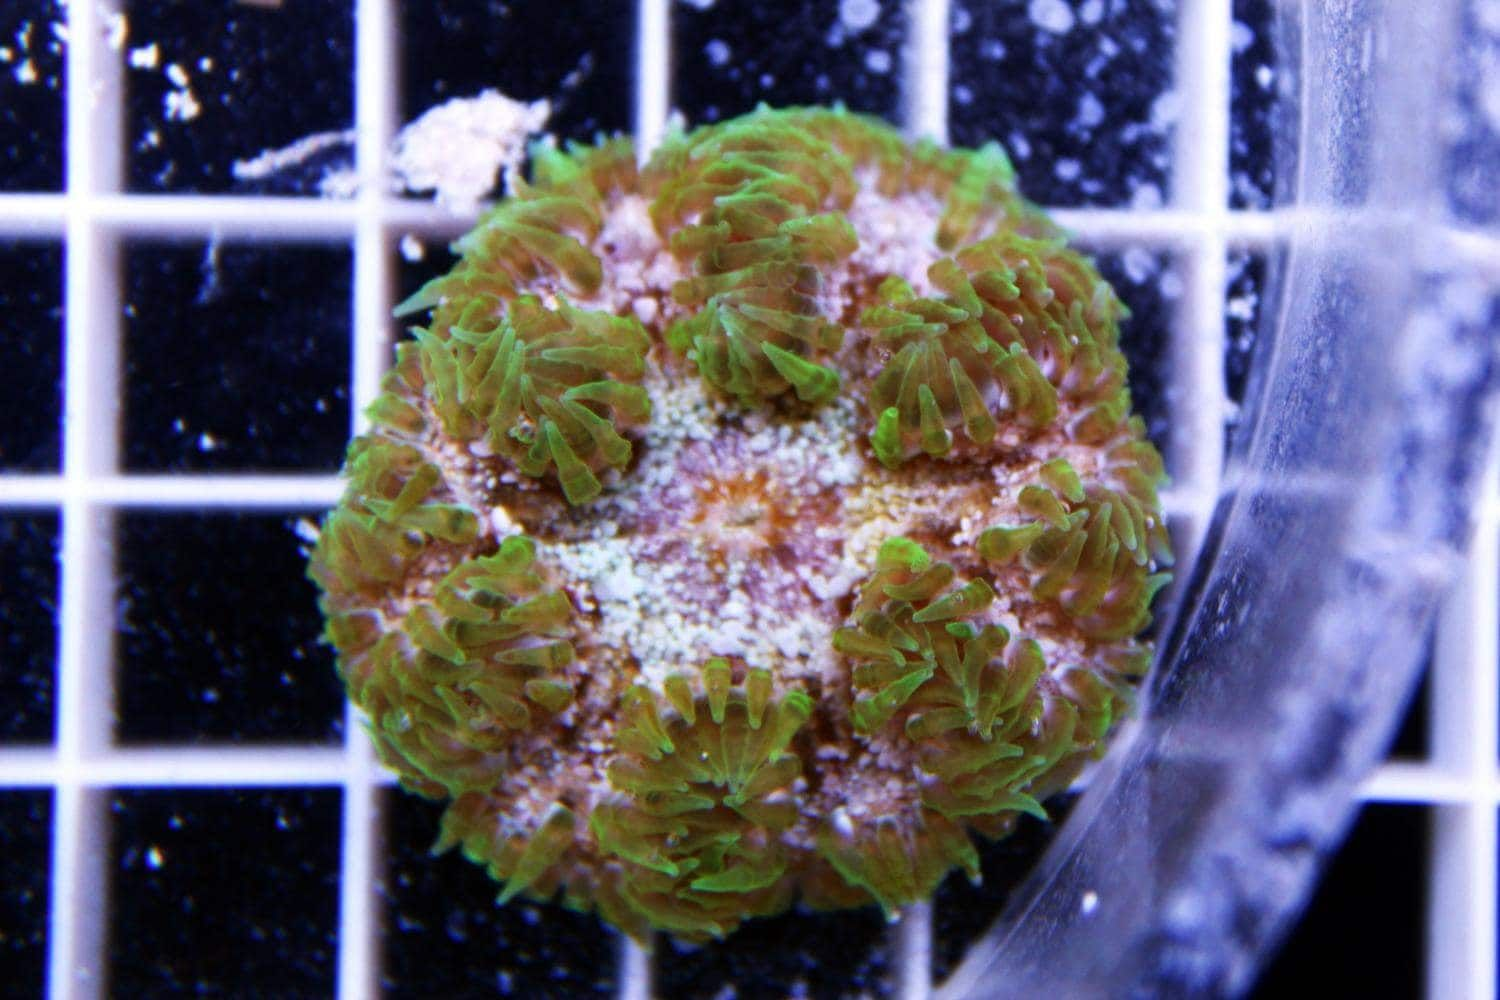 22 99 Rock Flower Anemone Green Epicystis Crucifer Care Minimum Tank Size 20 Gallons Care Level Intermediate Temperament Aggressive With Images Anemone Flowers Green